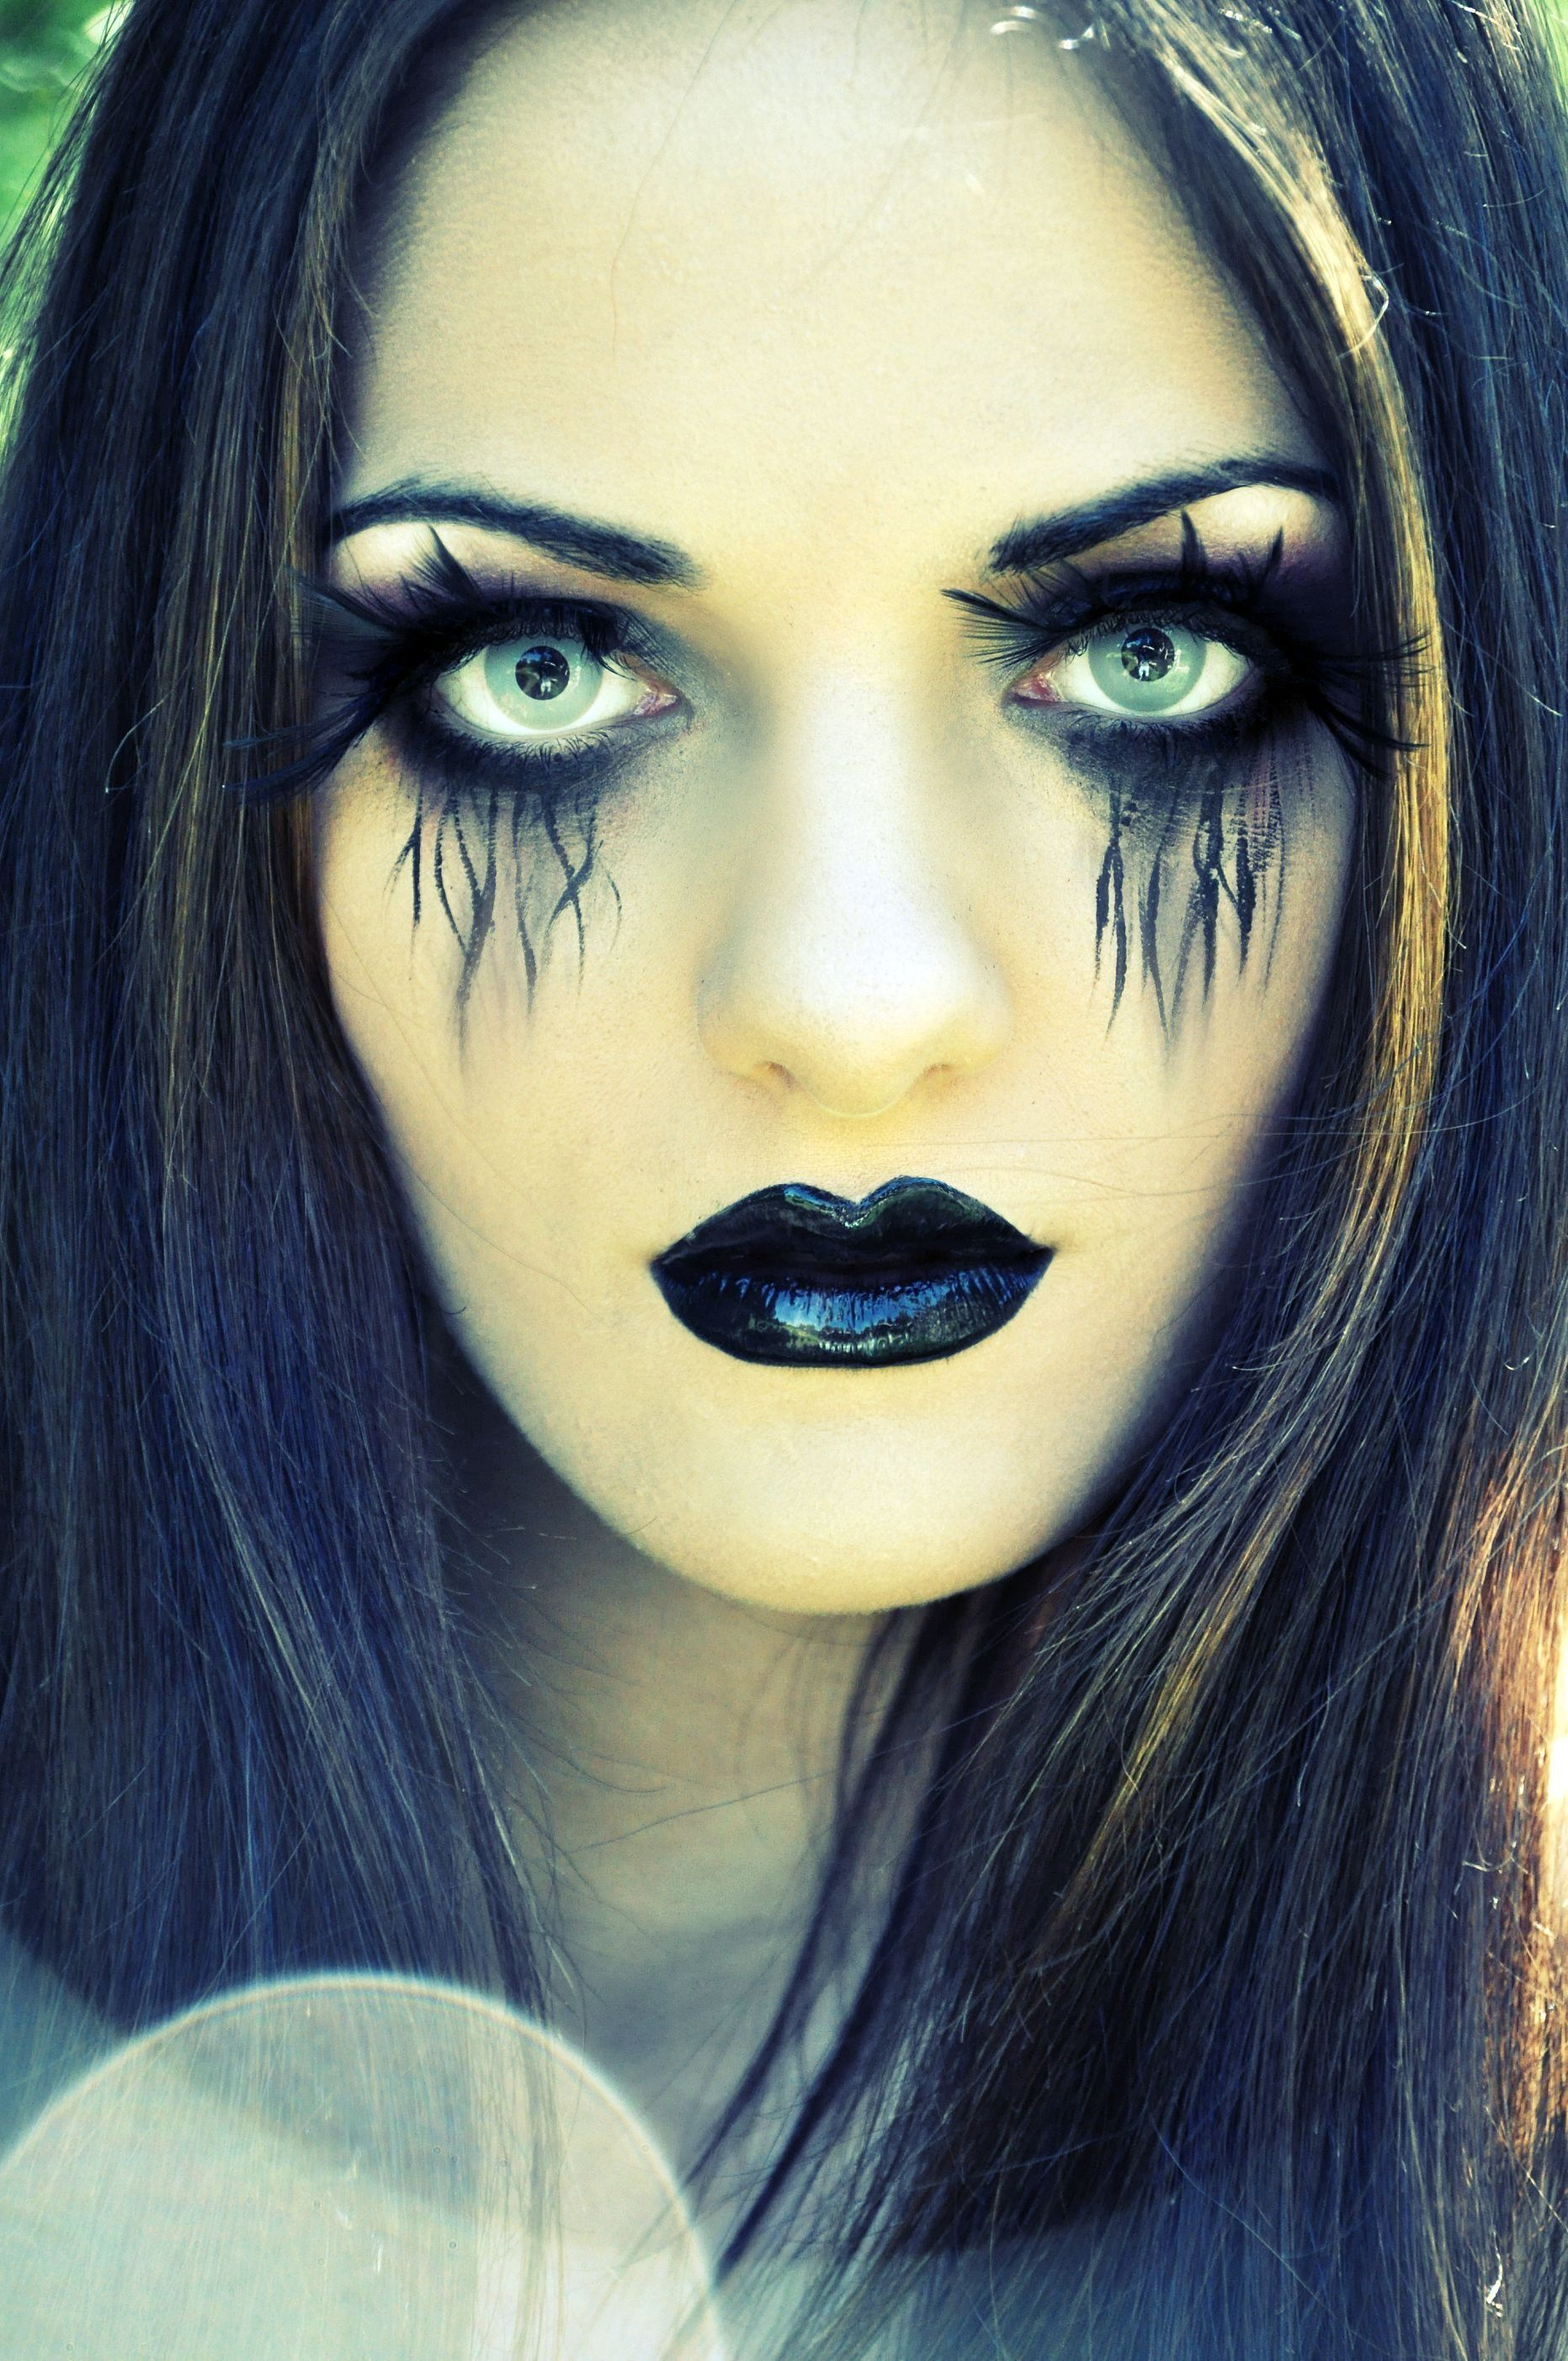 Halloween guide 2013: 20 awesomely scary makeup ideas for women ...